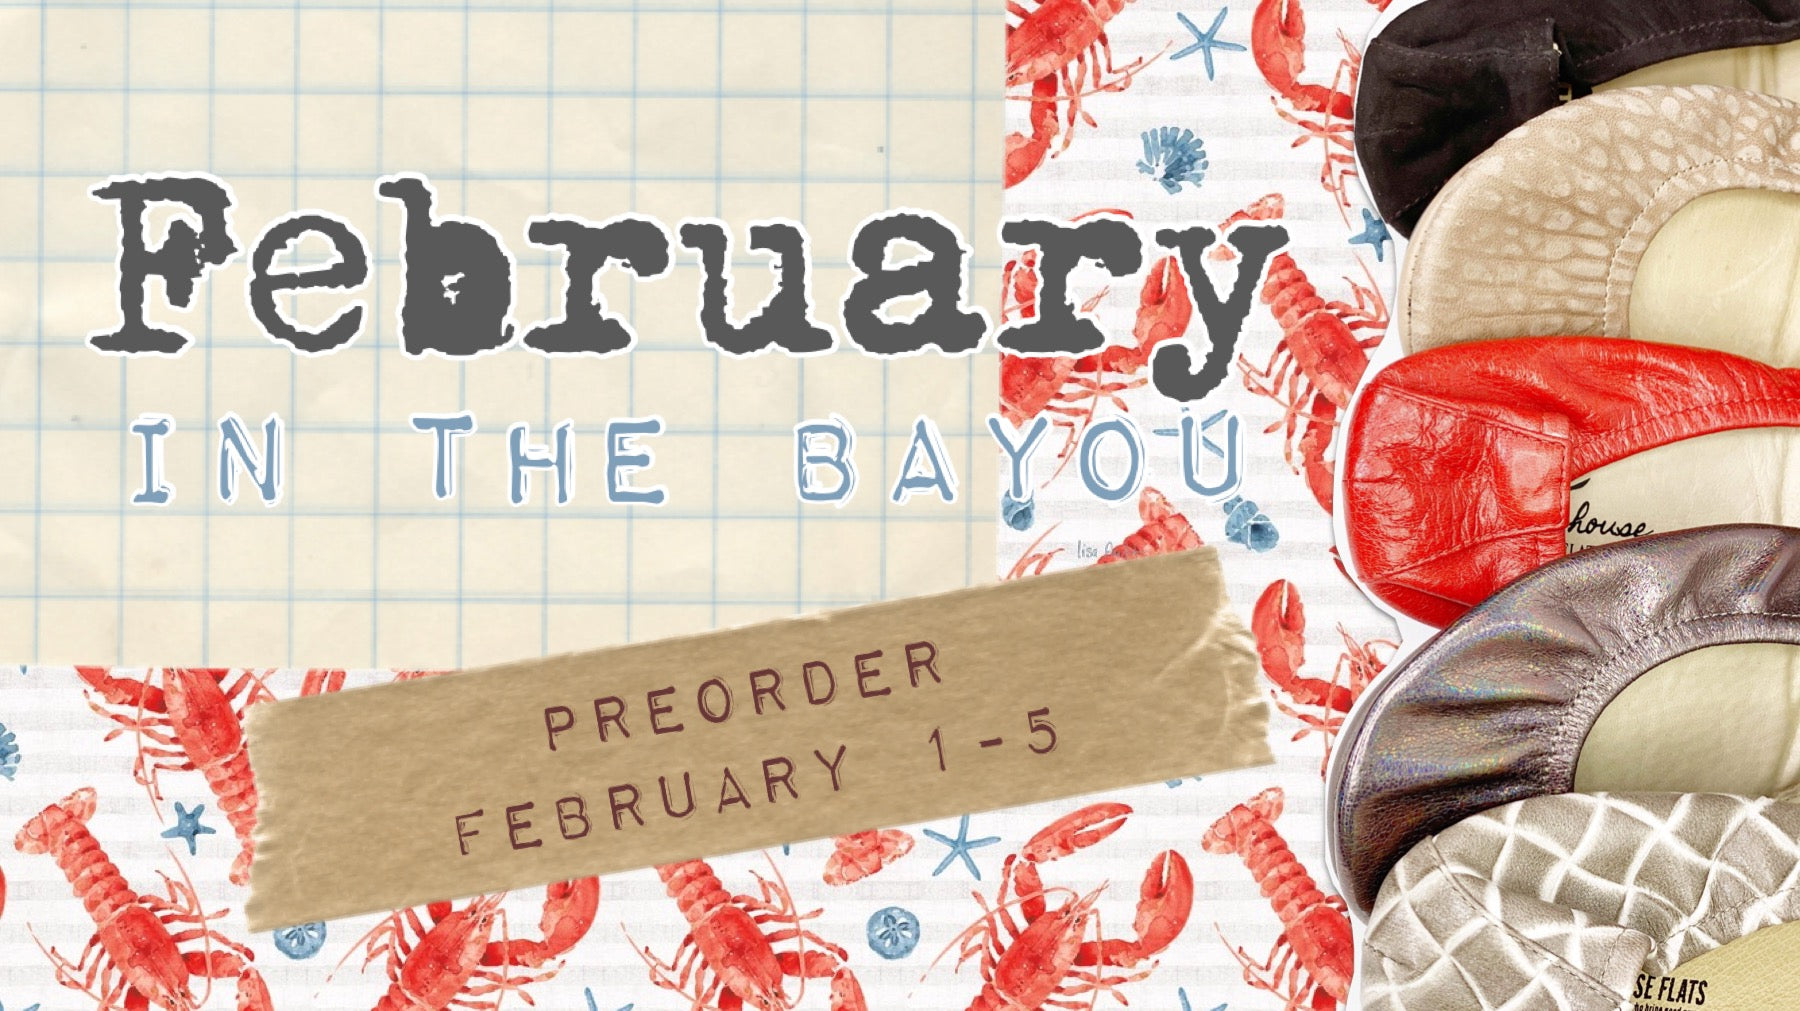 February Preorder Collection | In the Bayou